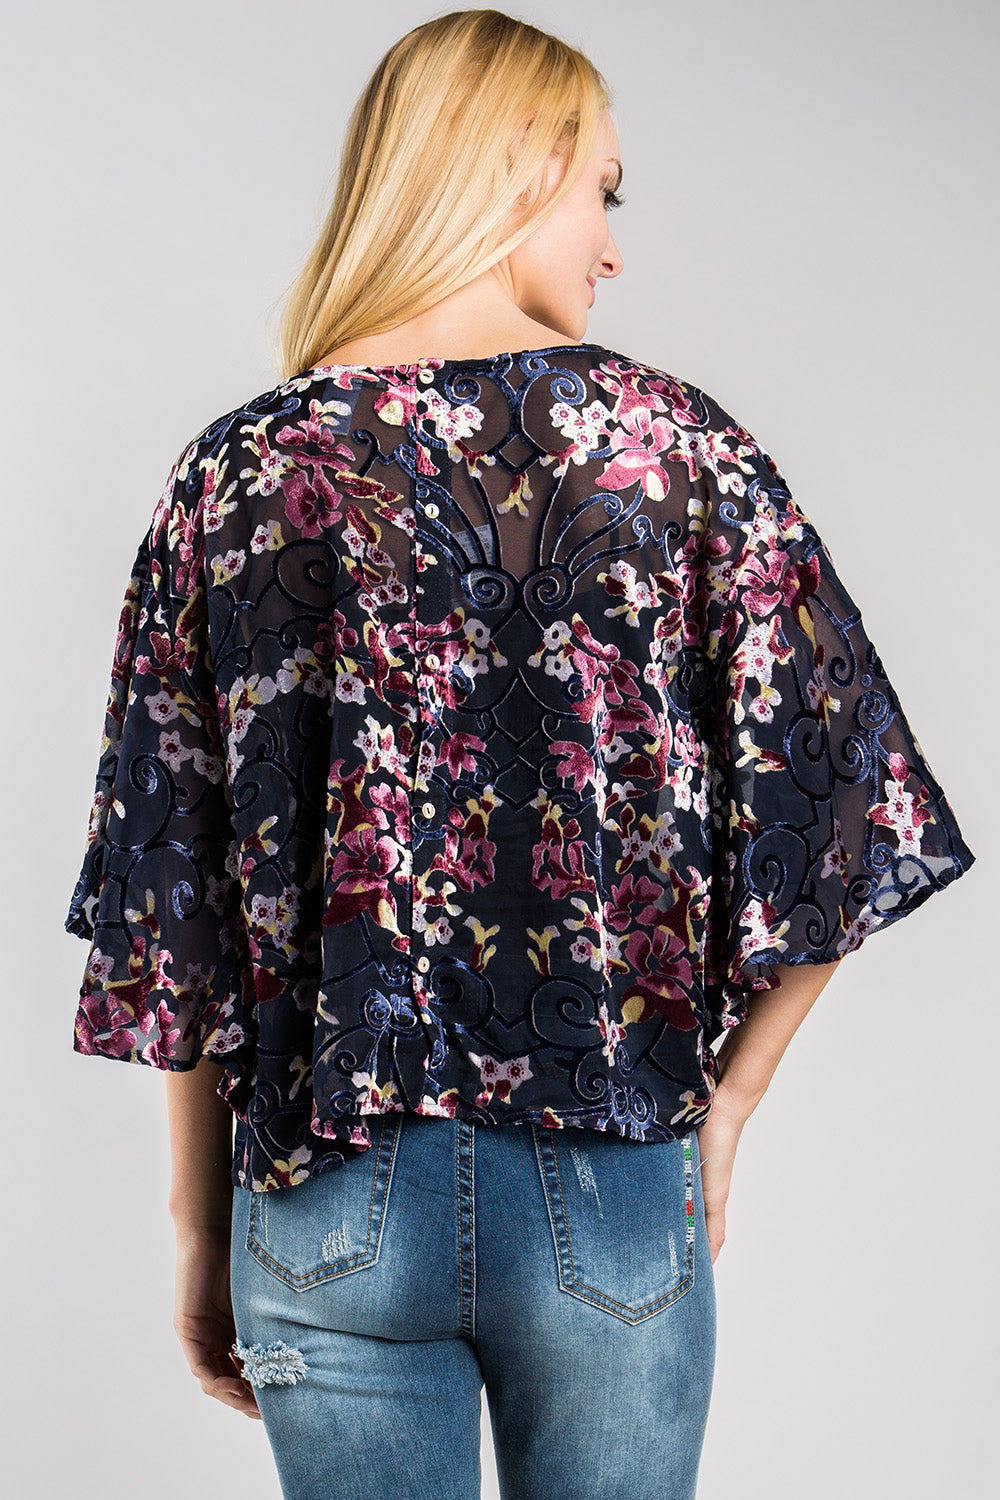 T2178 Burnout Top